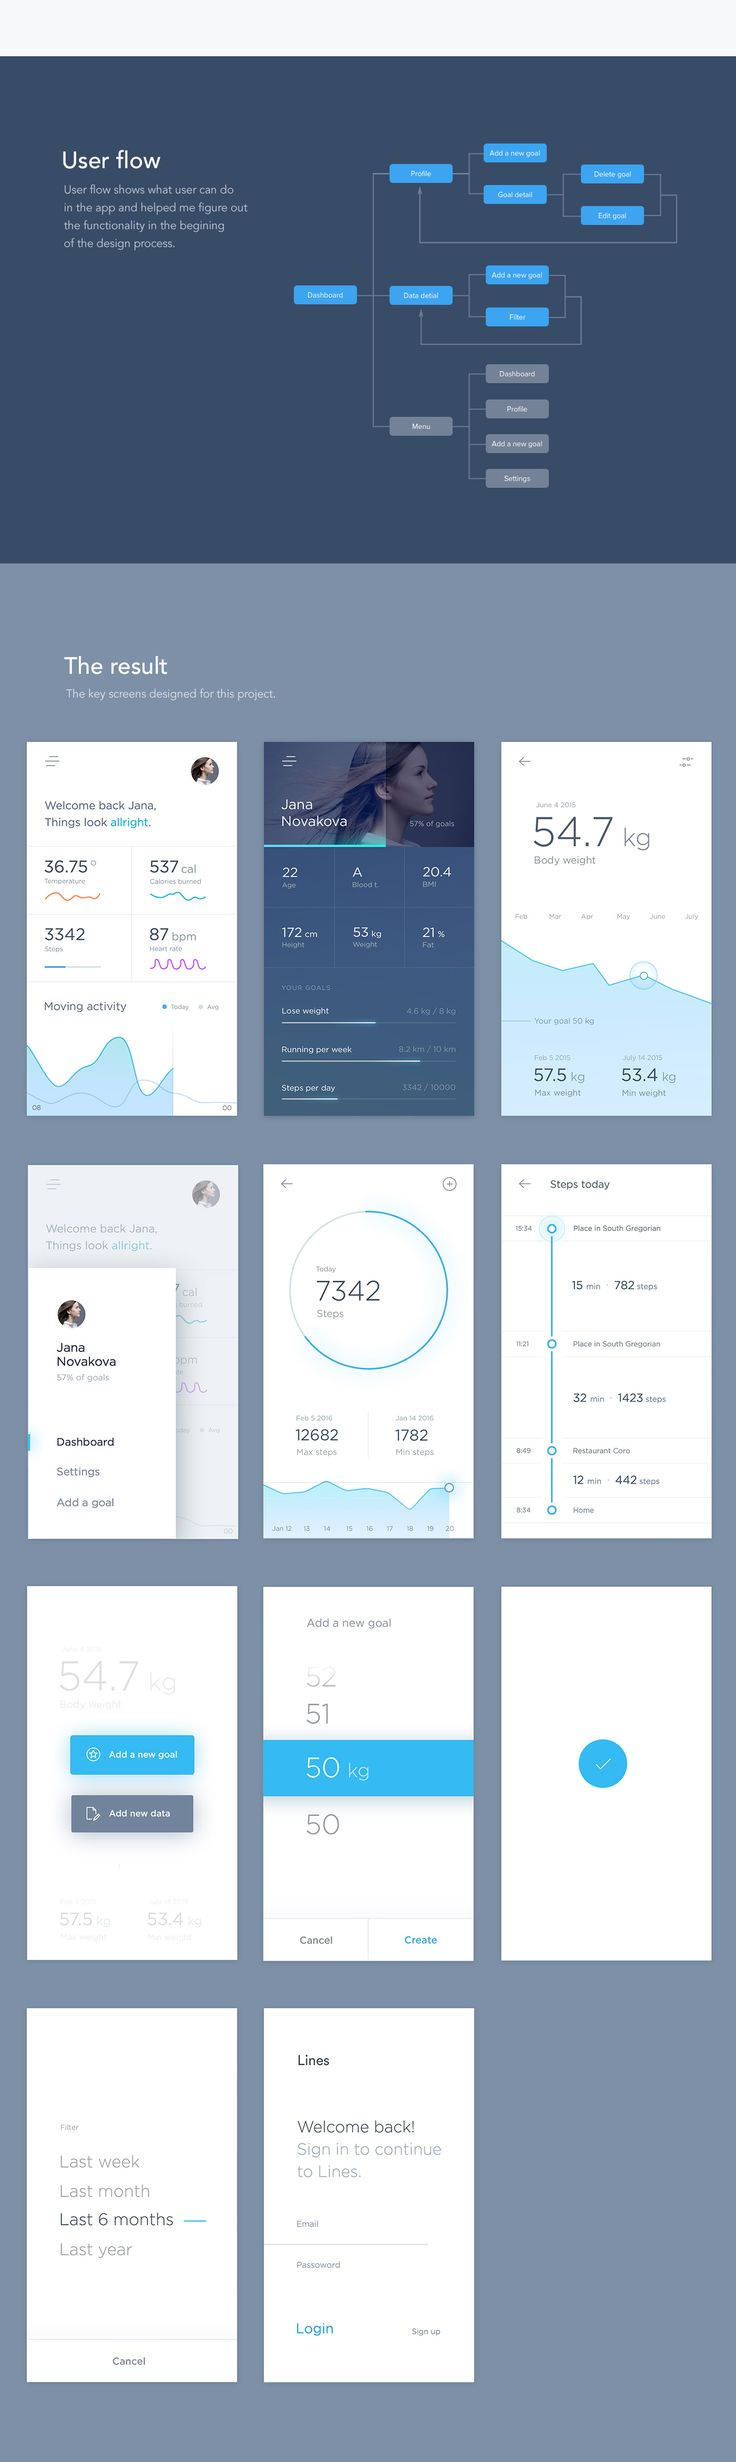 360 best images about UX / UI / dashboards on Pinterest